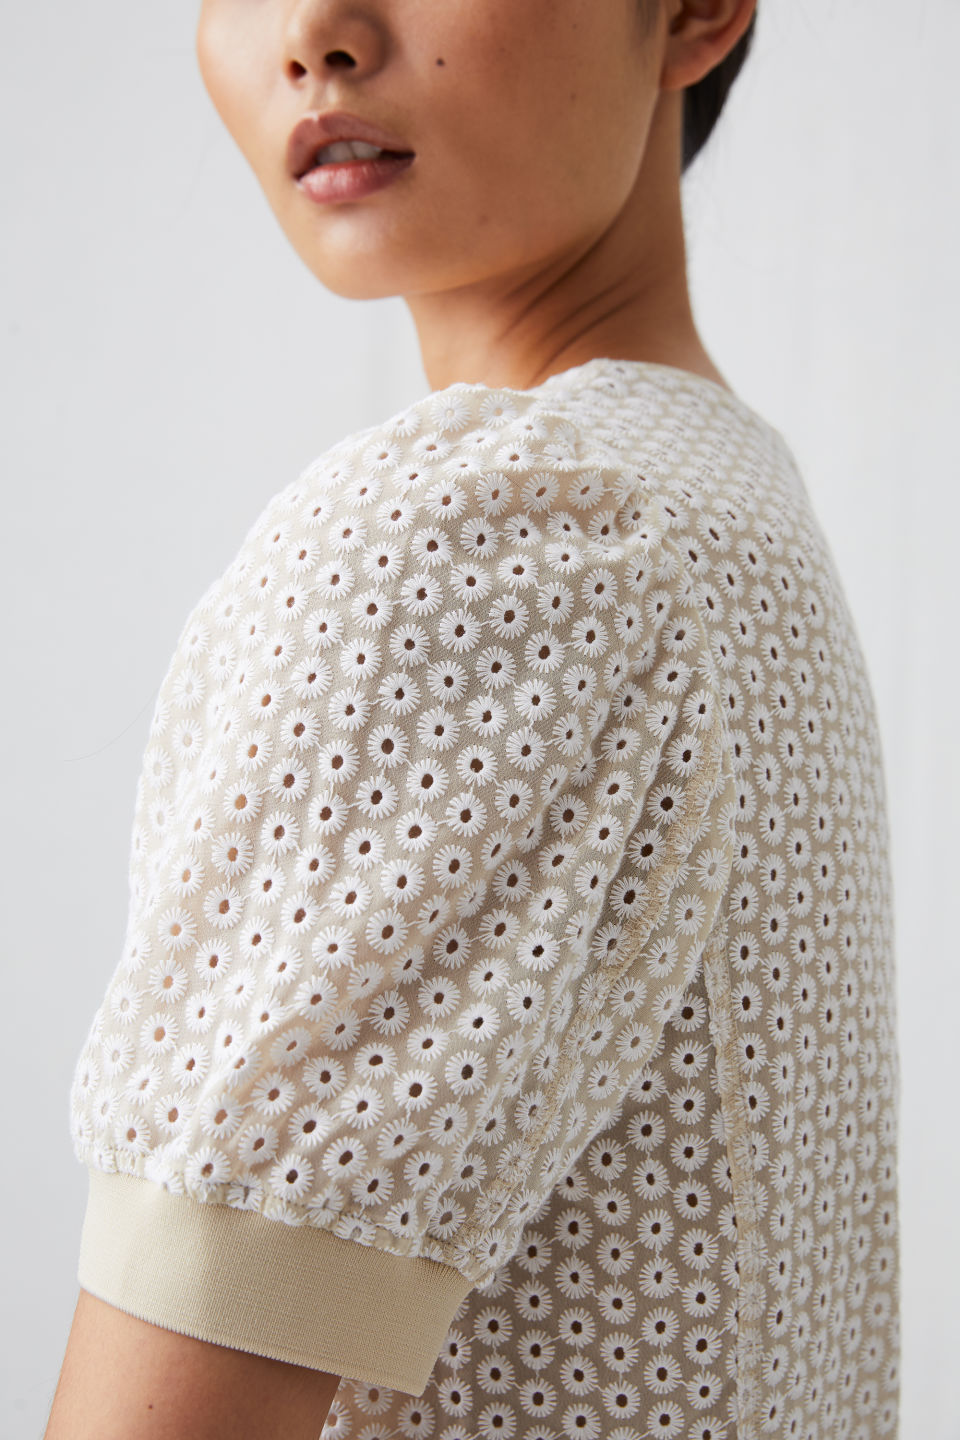 arket-embroidered-top-detail